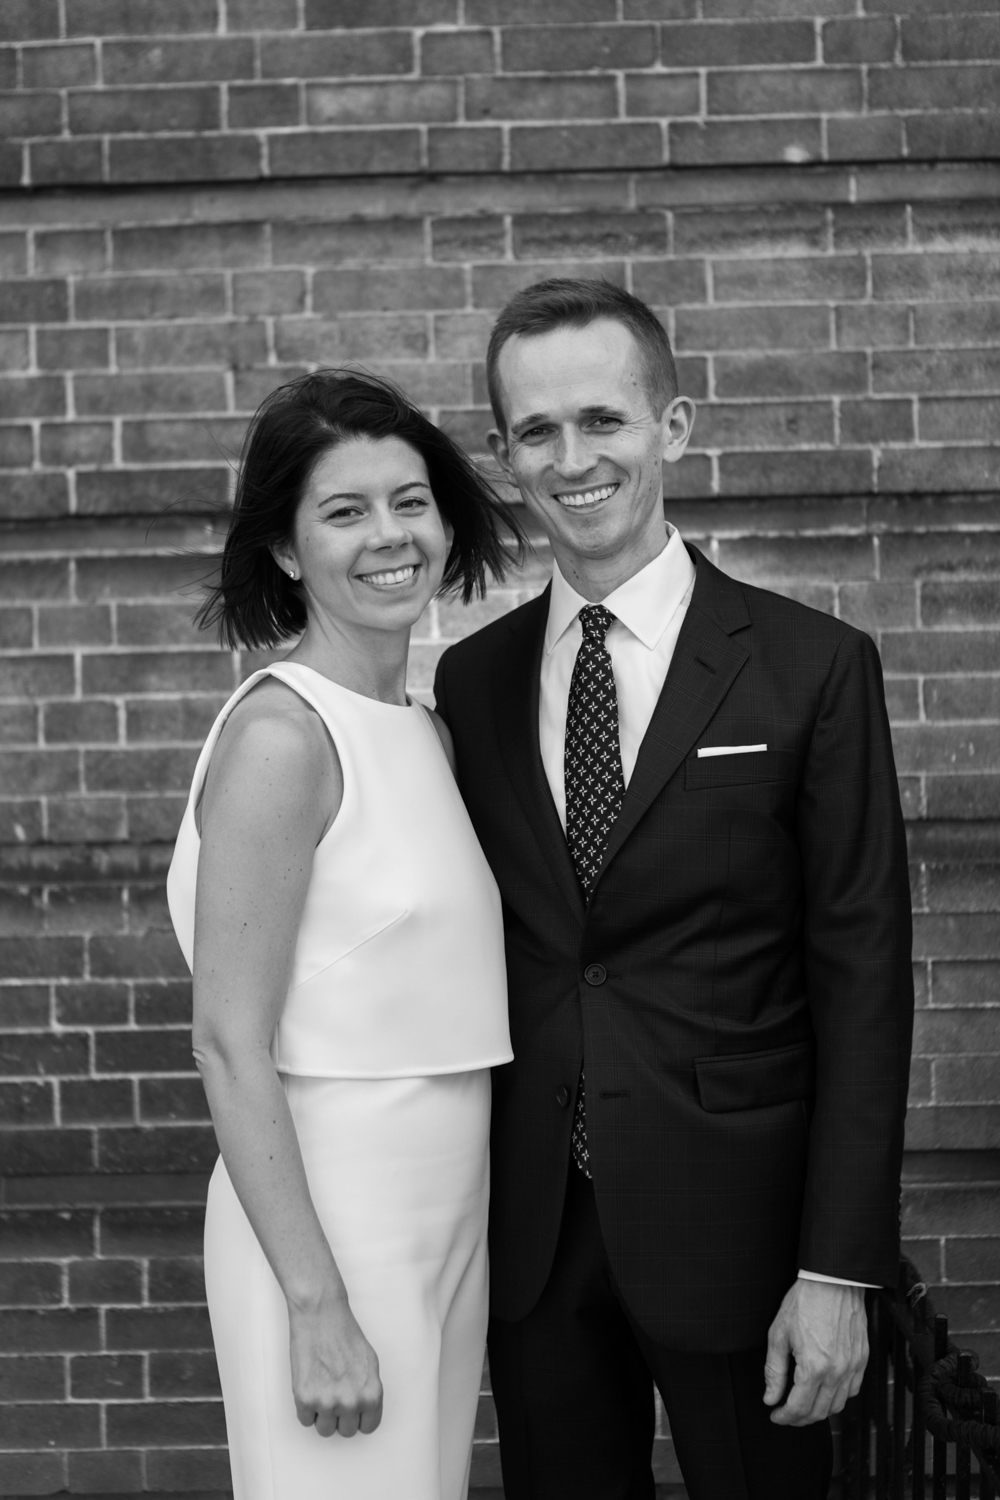 Black and white portrait of a couple on their wedding day.